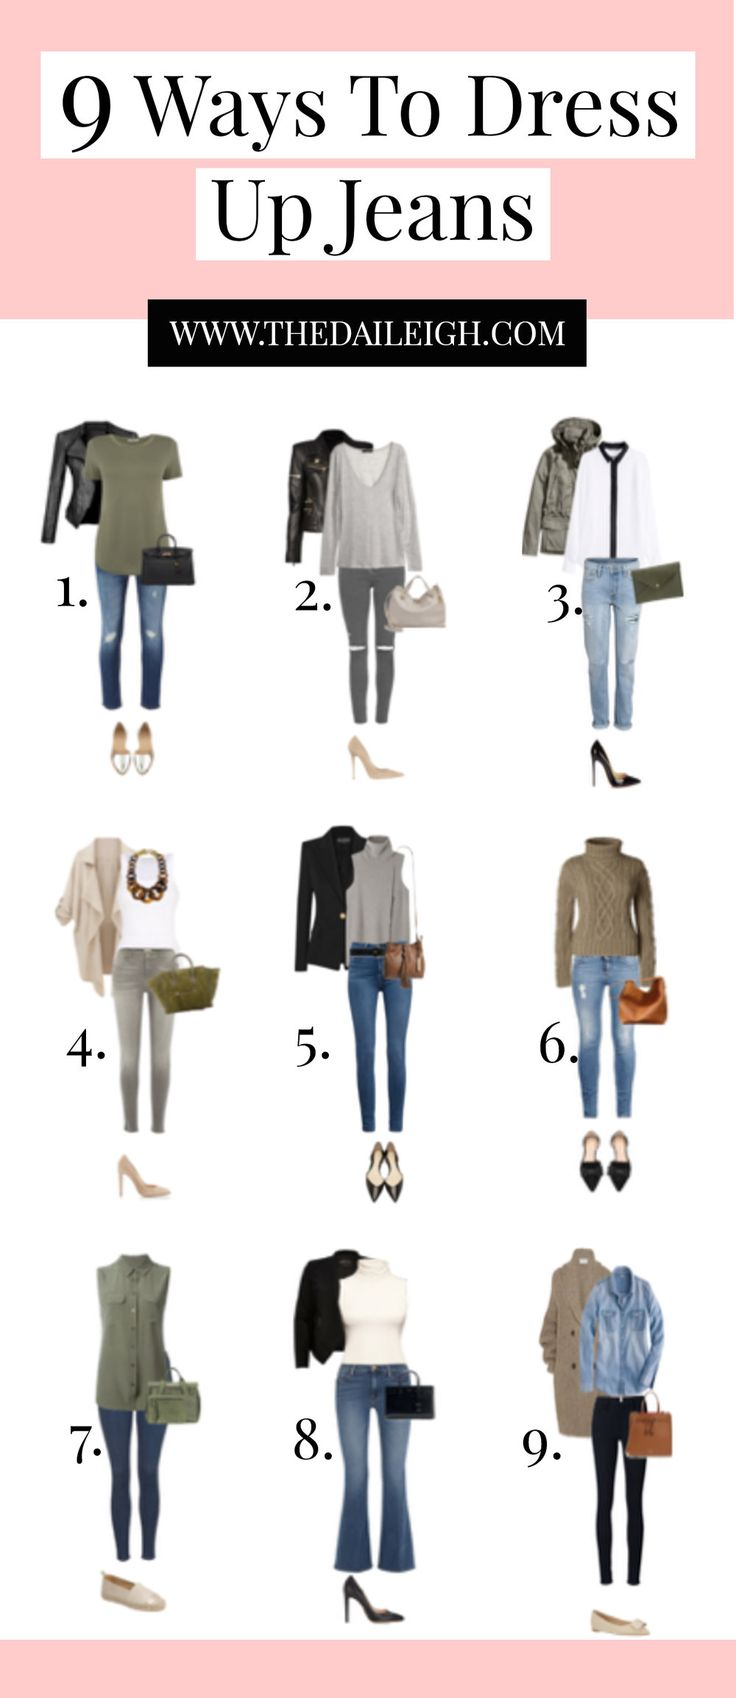 We all own a pair or two of jeans, right? I mean this is the one item we can always grab when in a rush and it'll work.  Jeans may seem like the easiest thing to wear.  But even the most casual and basic pieces can be dressed up to look more stylish and polished. These 9 outfits featured in this p